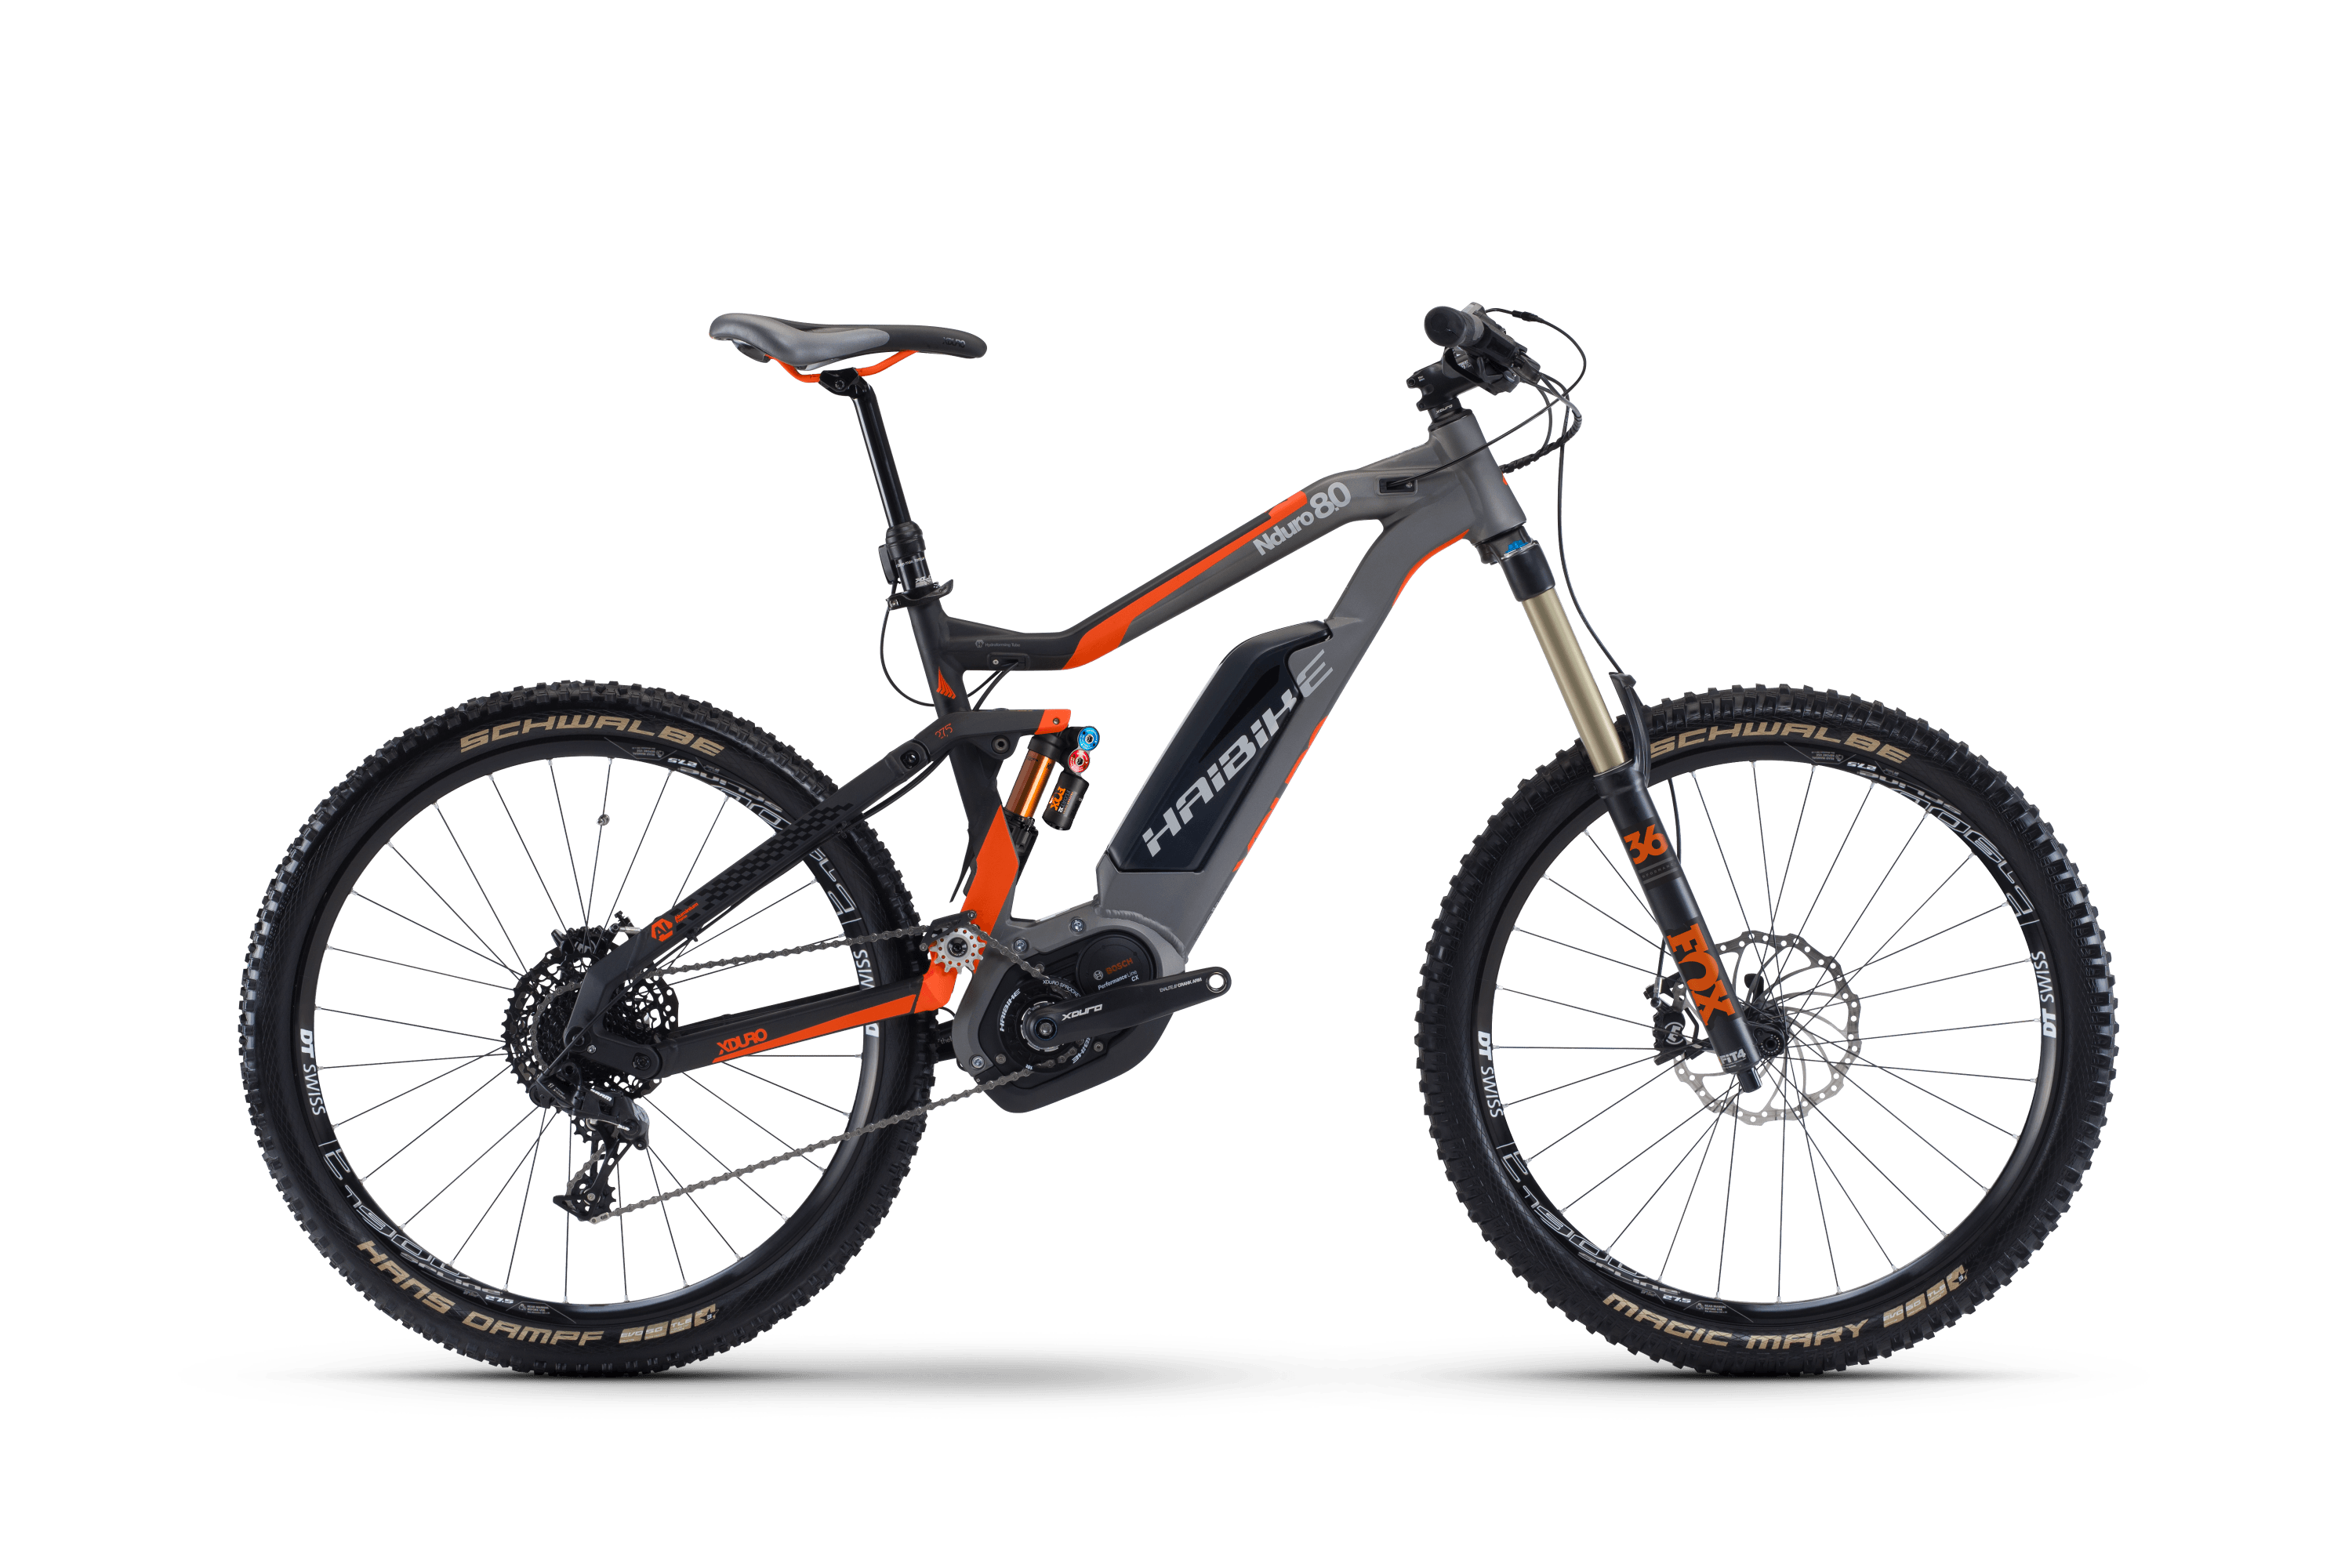 haibike sduro e mtb 39 s 2016 met yamaha motor. Black Bedroom Furniture Sets. Home Design Ideas